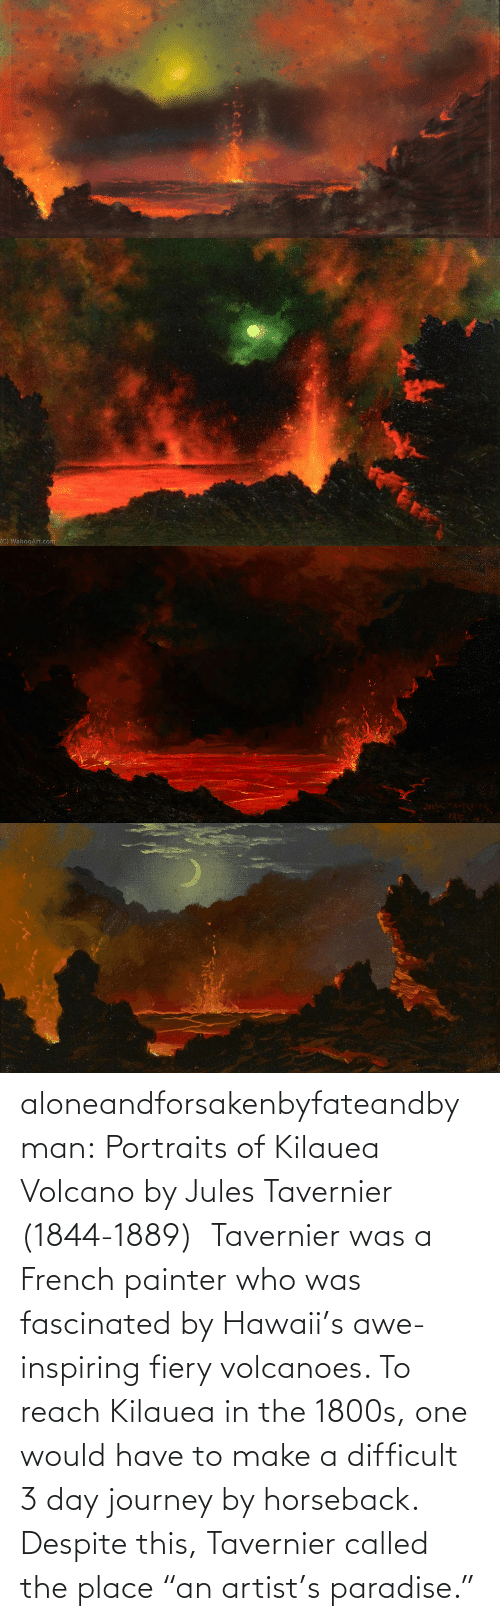 """Journey: aloneandforsakenbyfateandbyman:  Portraits of Kilauea Volcano by Jules Tavernier (1844-1889)   Tavernier was a French painter who was fascinated by Hawaii's awe-inspiring fiery volcanoes. To reach Kilauea in the 1800s, one would have to make a difficult 3 day journey by horseback. Despite this, Tavernier called the place """"an artist's paradise."""""""